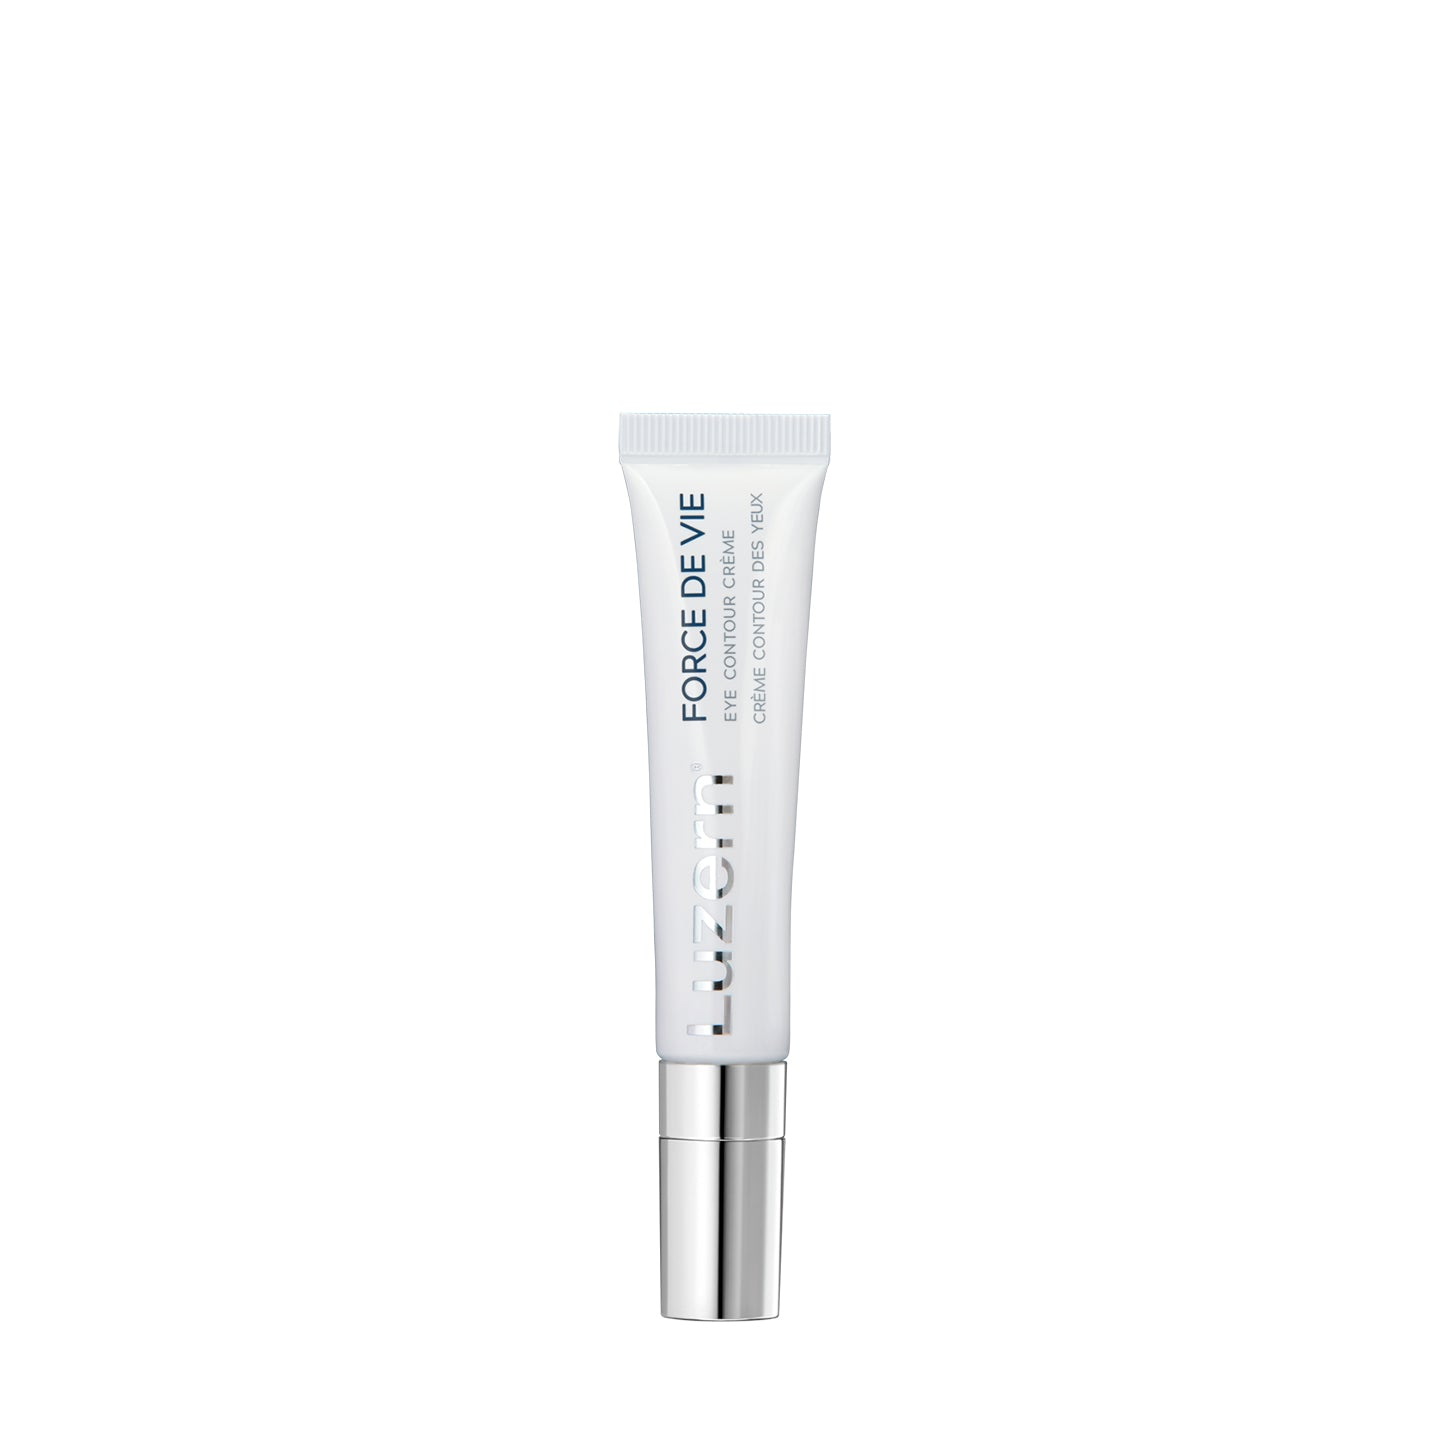 Luzern Force de Vie Eye Contour Cream